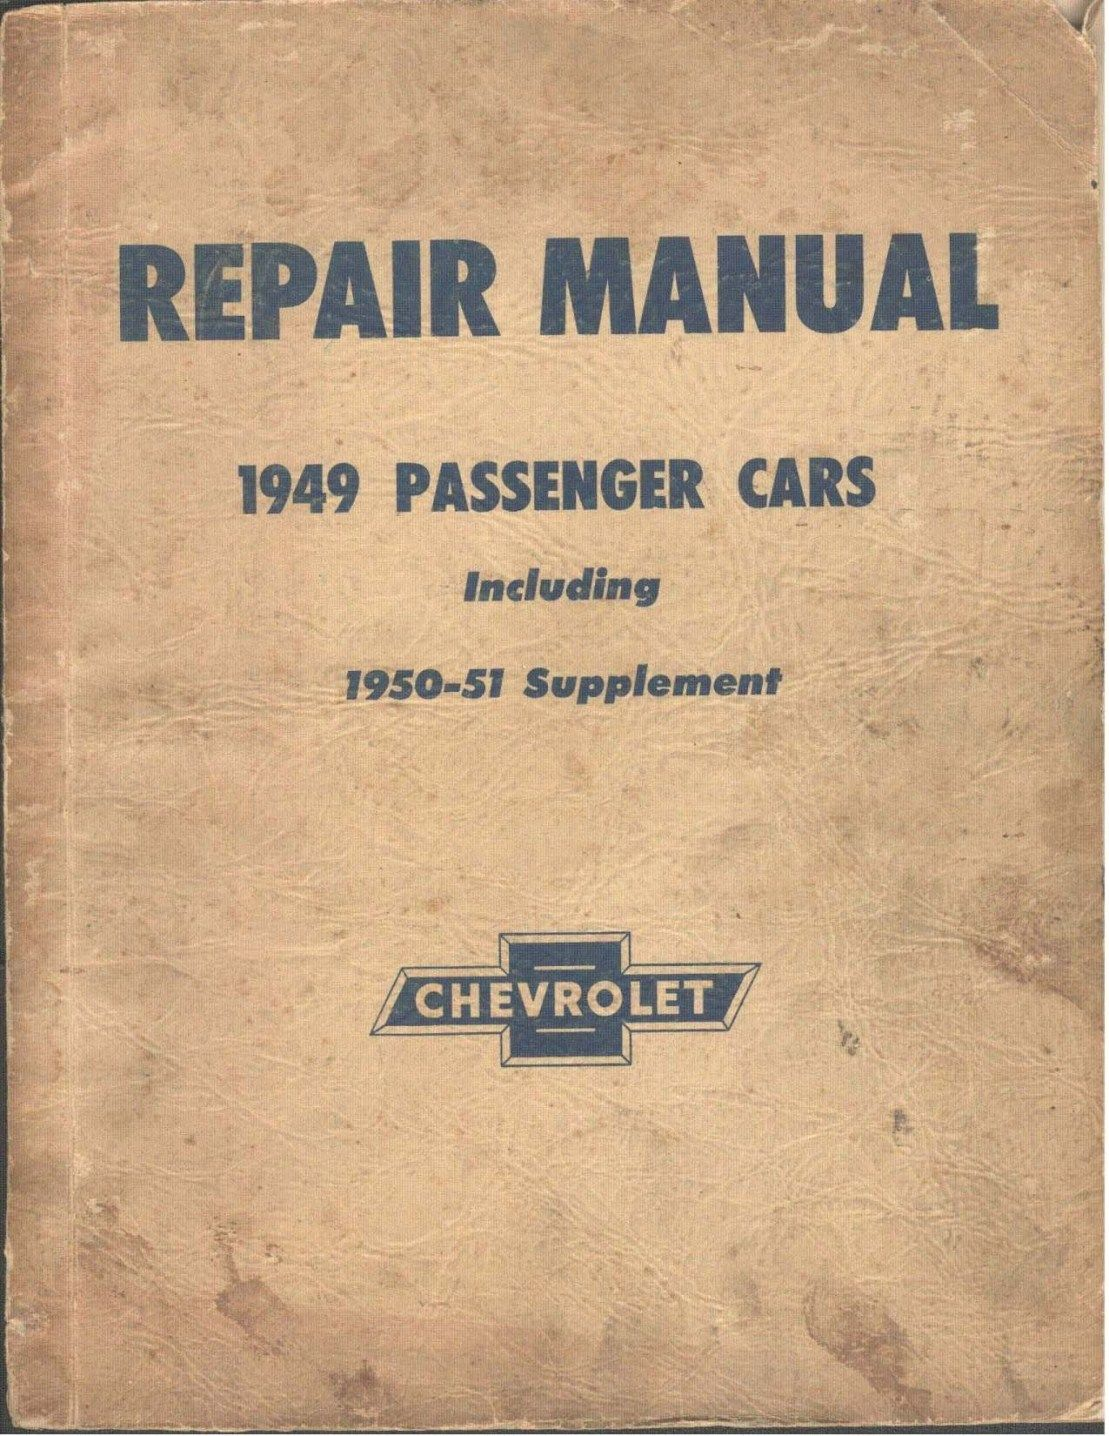 1949 Chevrolet Passenger Car Repair Manual including 1950-1 Suppliment